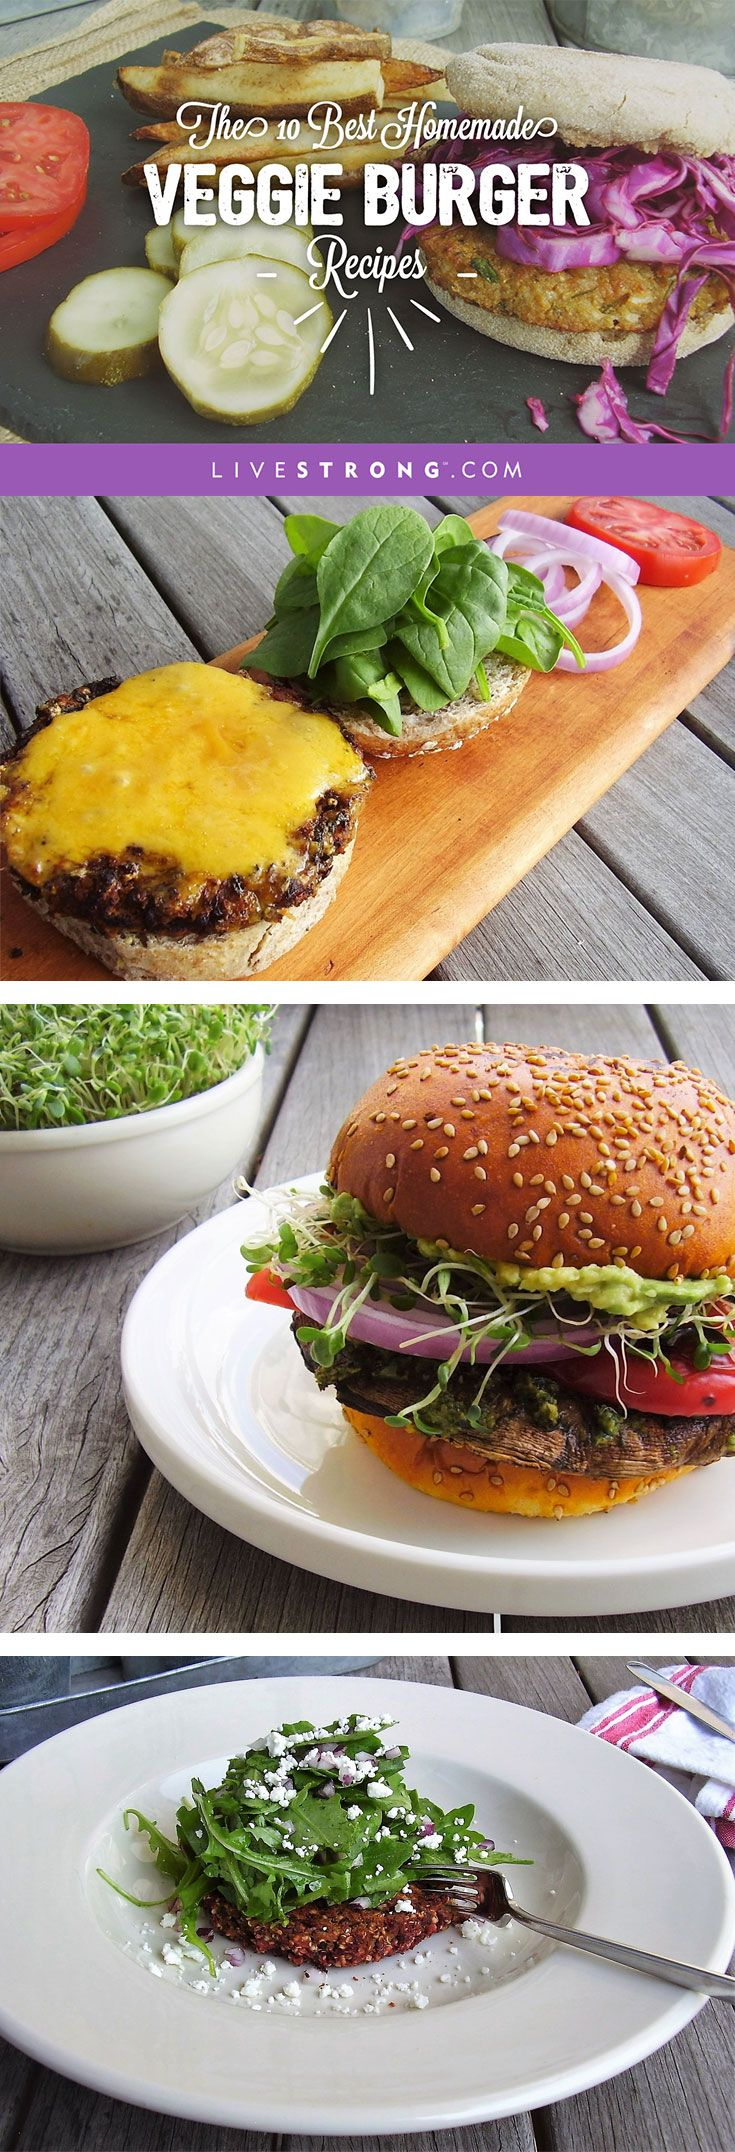 The 10 Best Homemade Veggie Burger Recipes